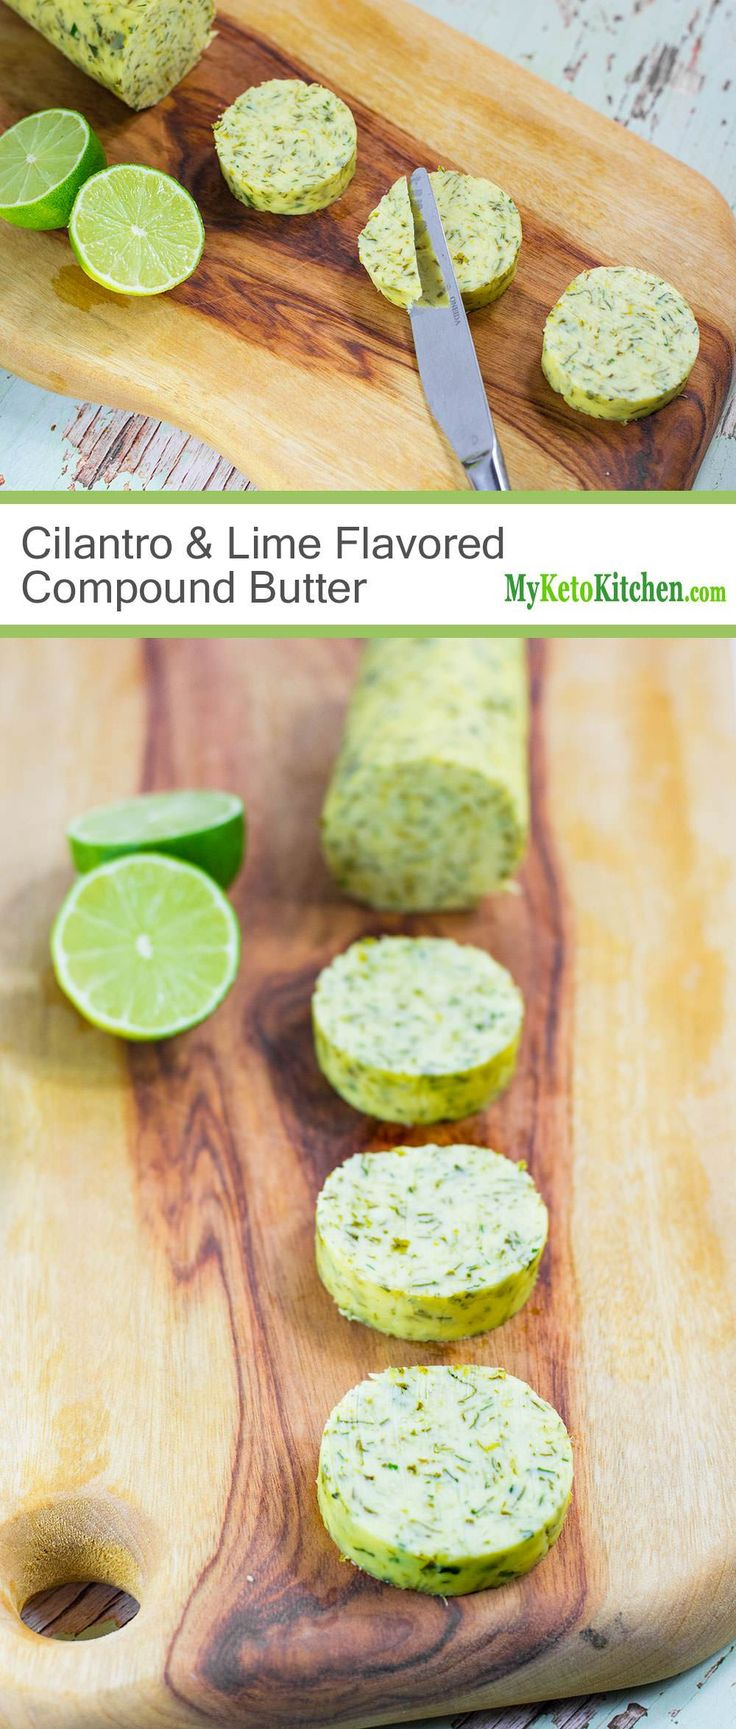 Cilantro & Lime Flavored Compound Butter (Low Carb, Keto)